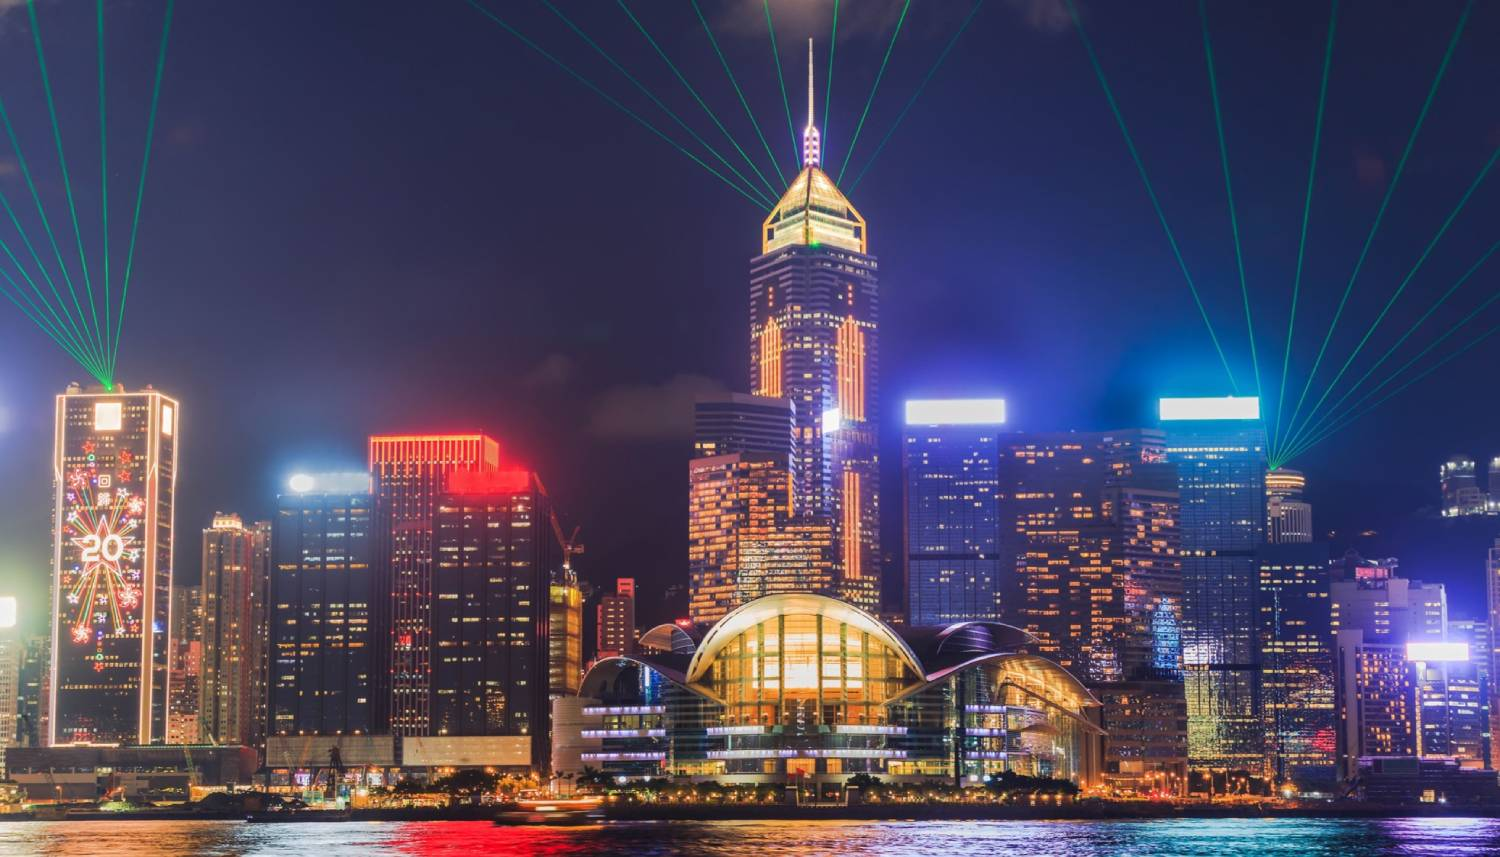 Symphony of Lights - Things To Do In Hong Kong